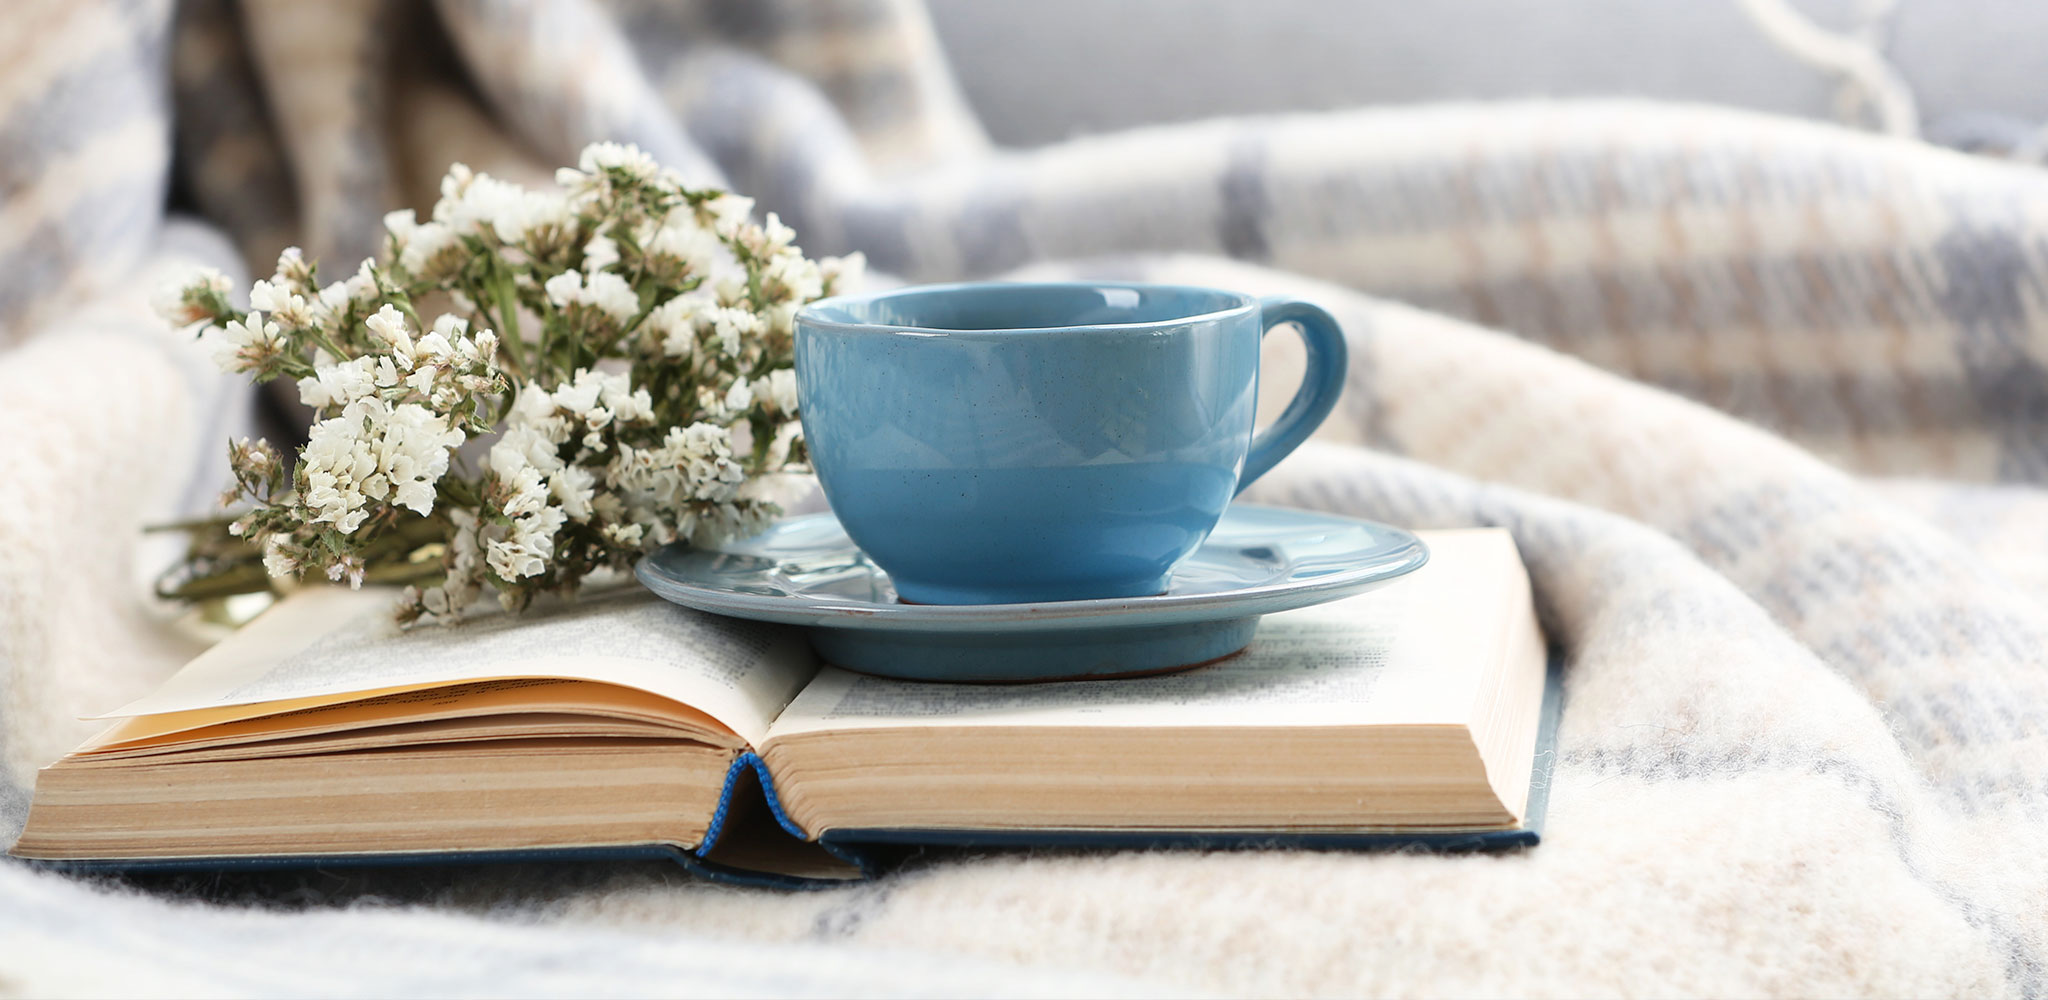 Coffee cup on a book in a relaxing environment